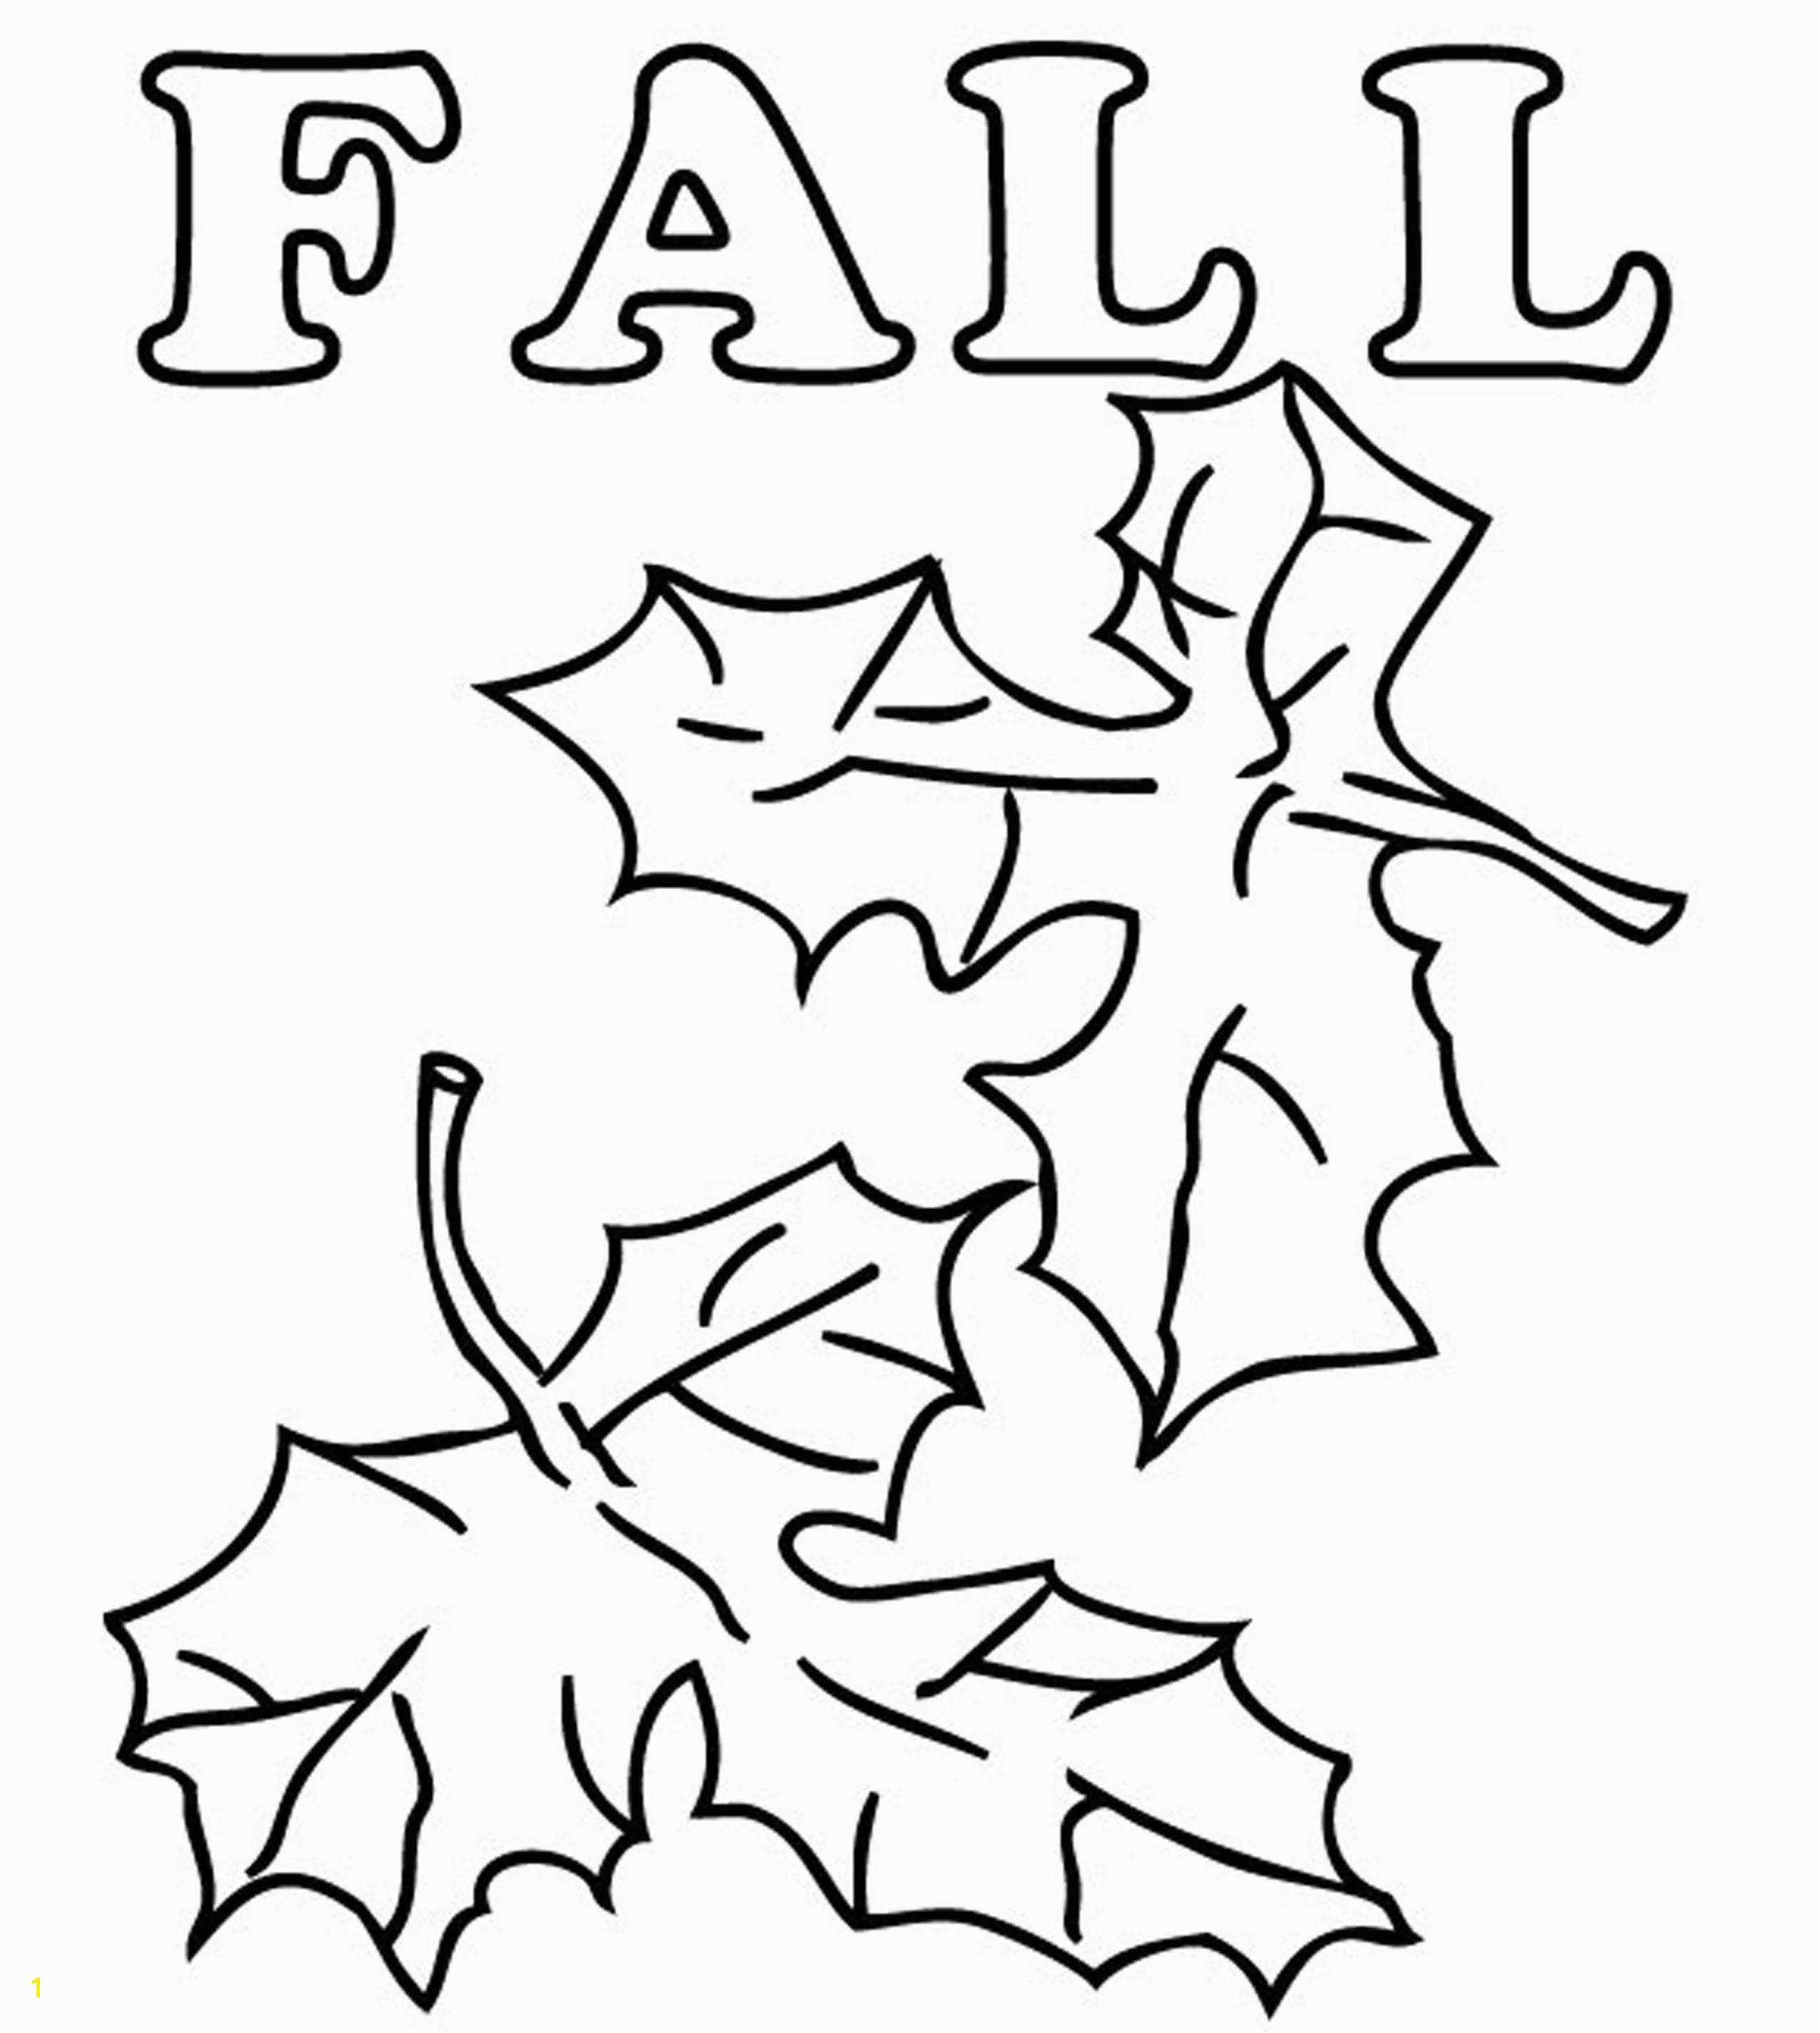 Clover Leaf Coloring Page Luxury Fall Coloring Pages 0d Page for Kids Inspirational Kidsboys Clover